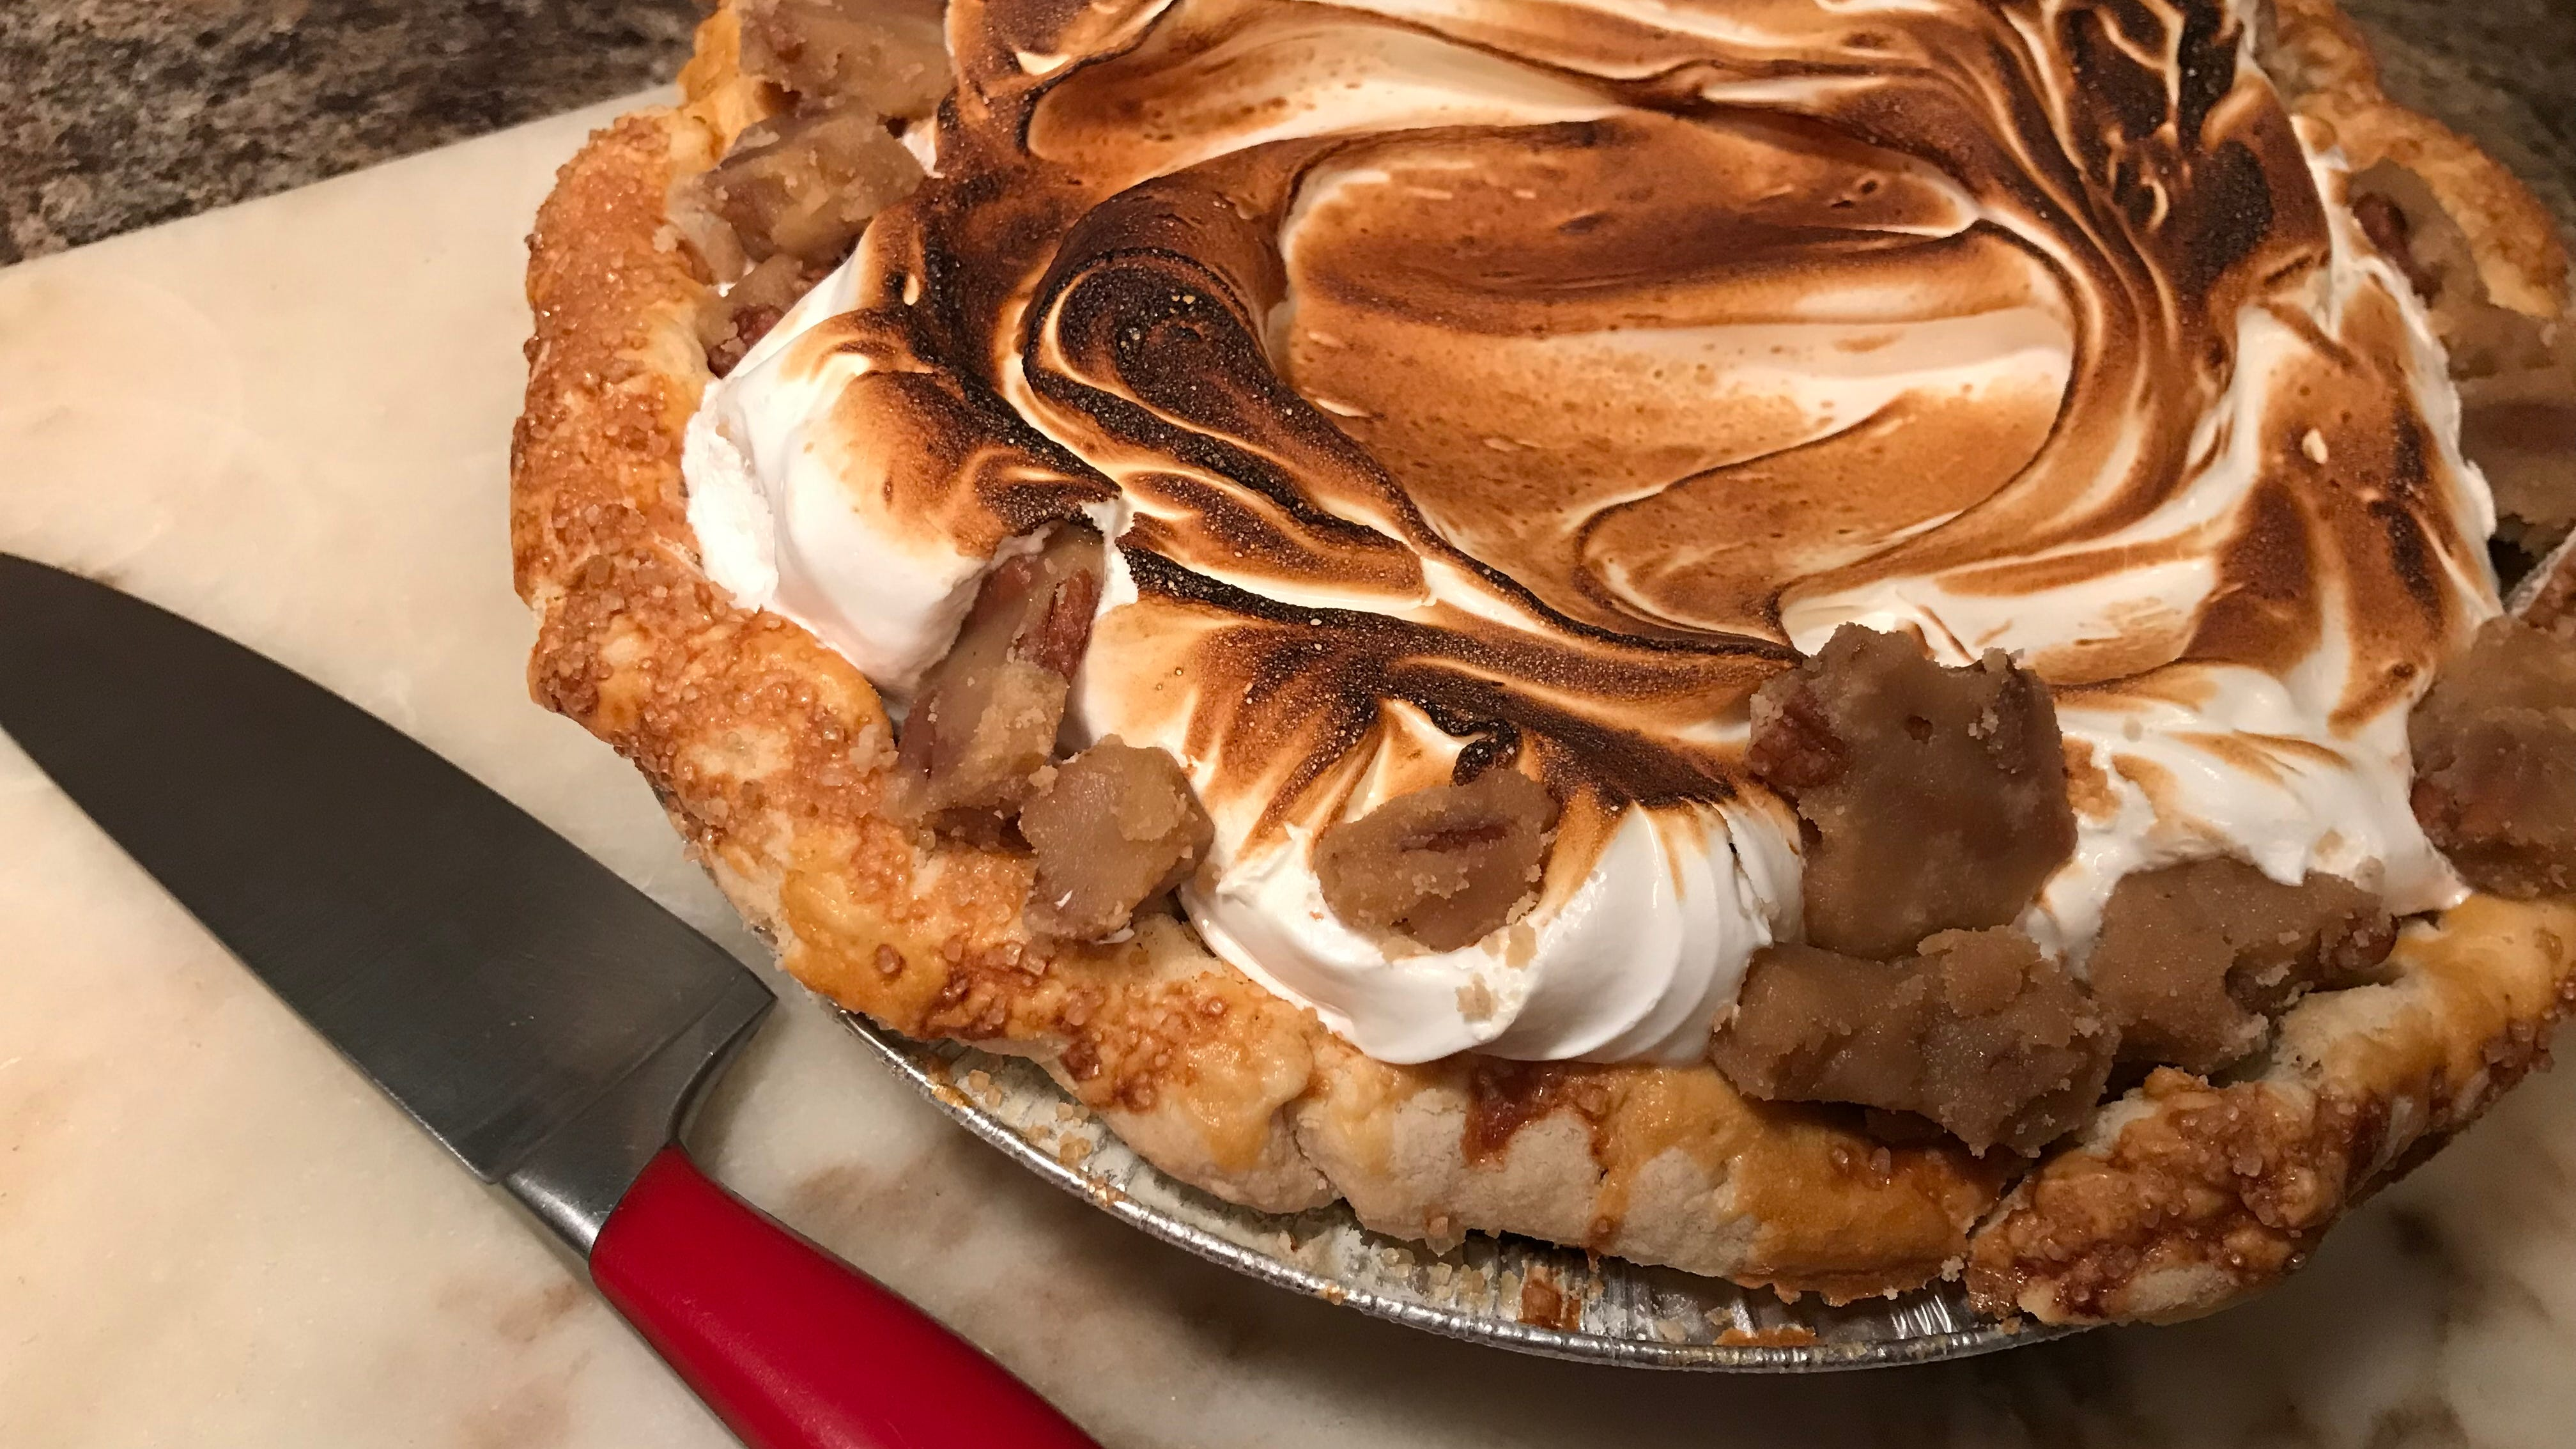 Toasted marshmallow sweet potato pie by Pots & Pans Pie Co., Indianapolis. Pots & Pans new pie shop opens Nov. 20 at 4915 College Ave., south of Broad Ripple. The cafe side of the business opens Dec. 1.